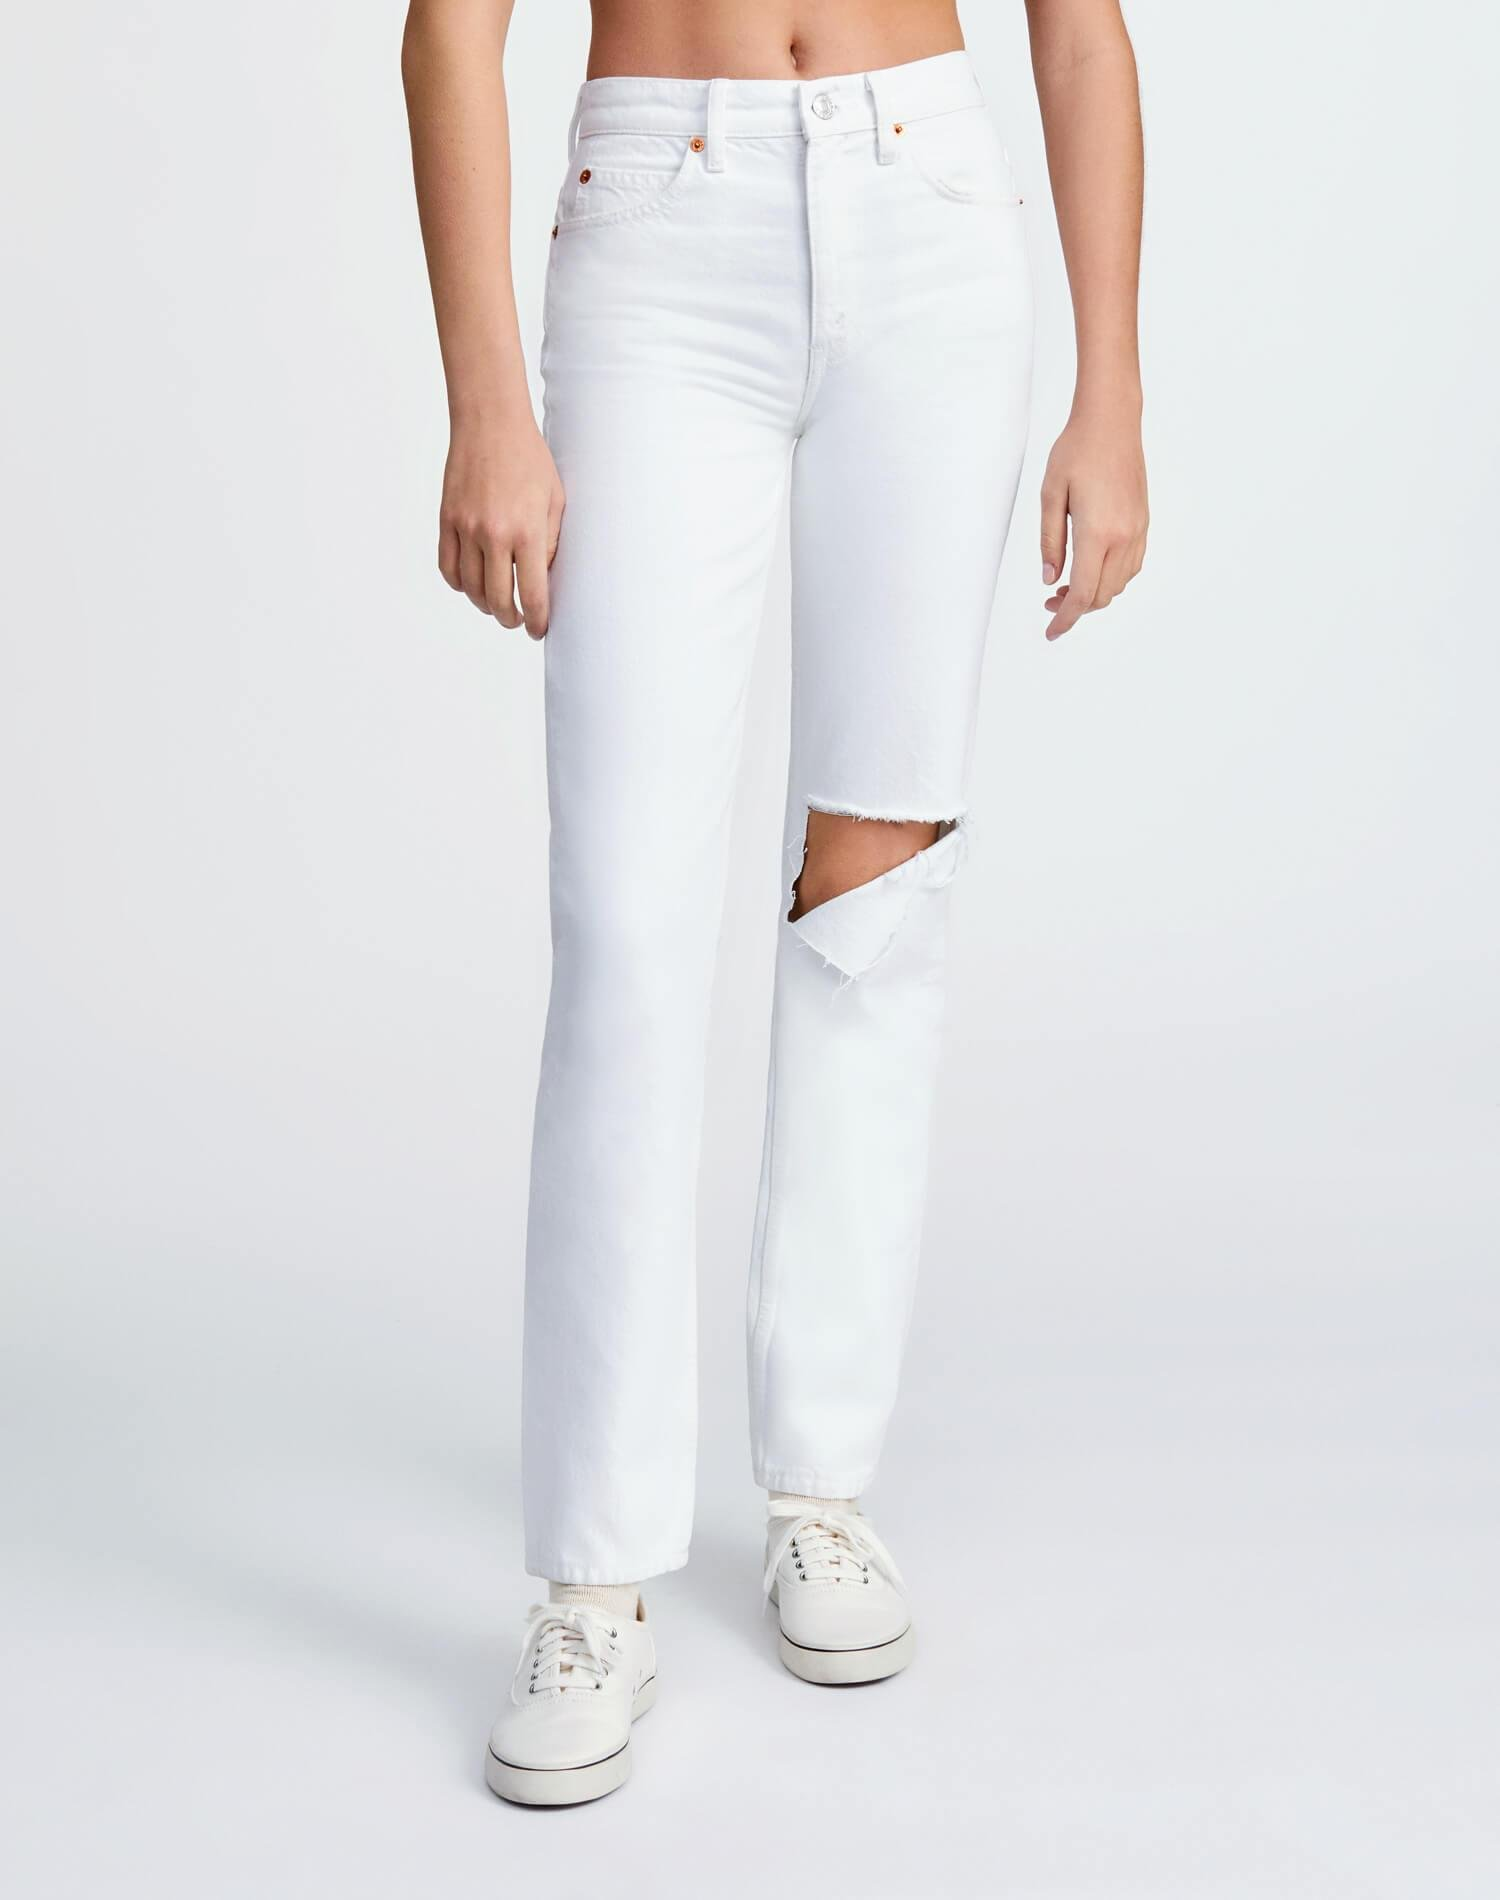 70s Straight - White with Rips